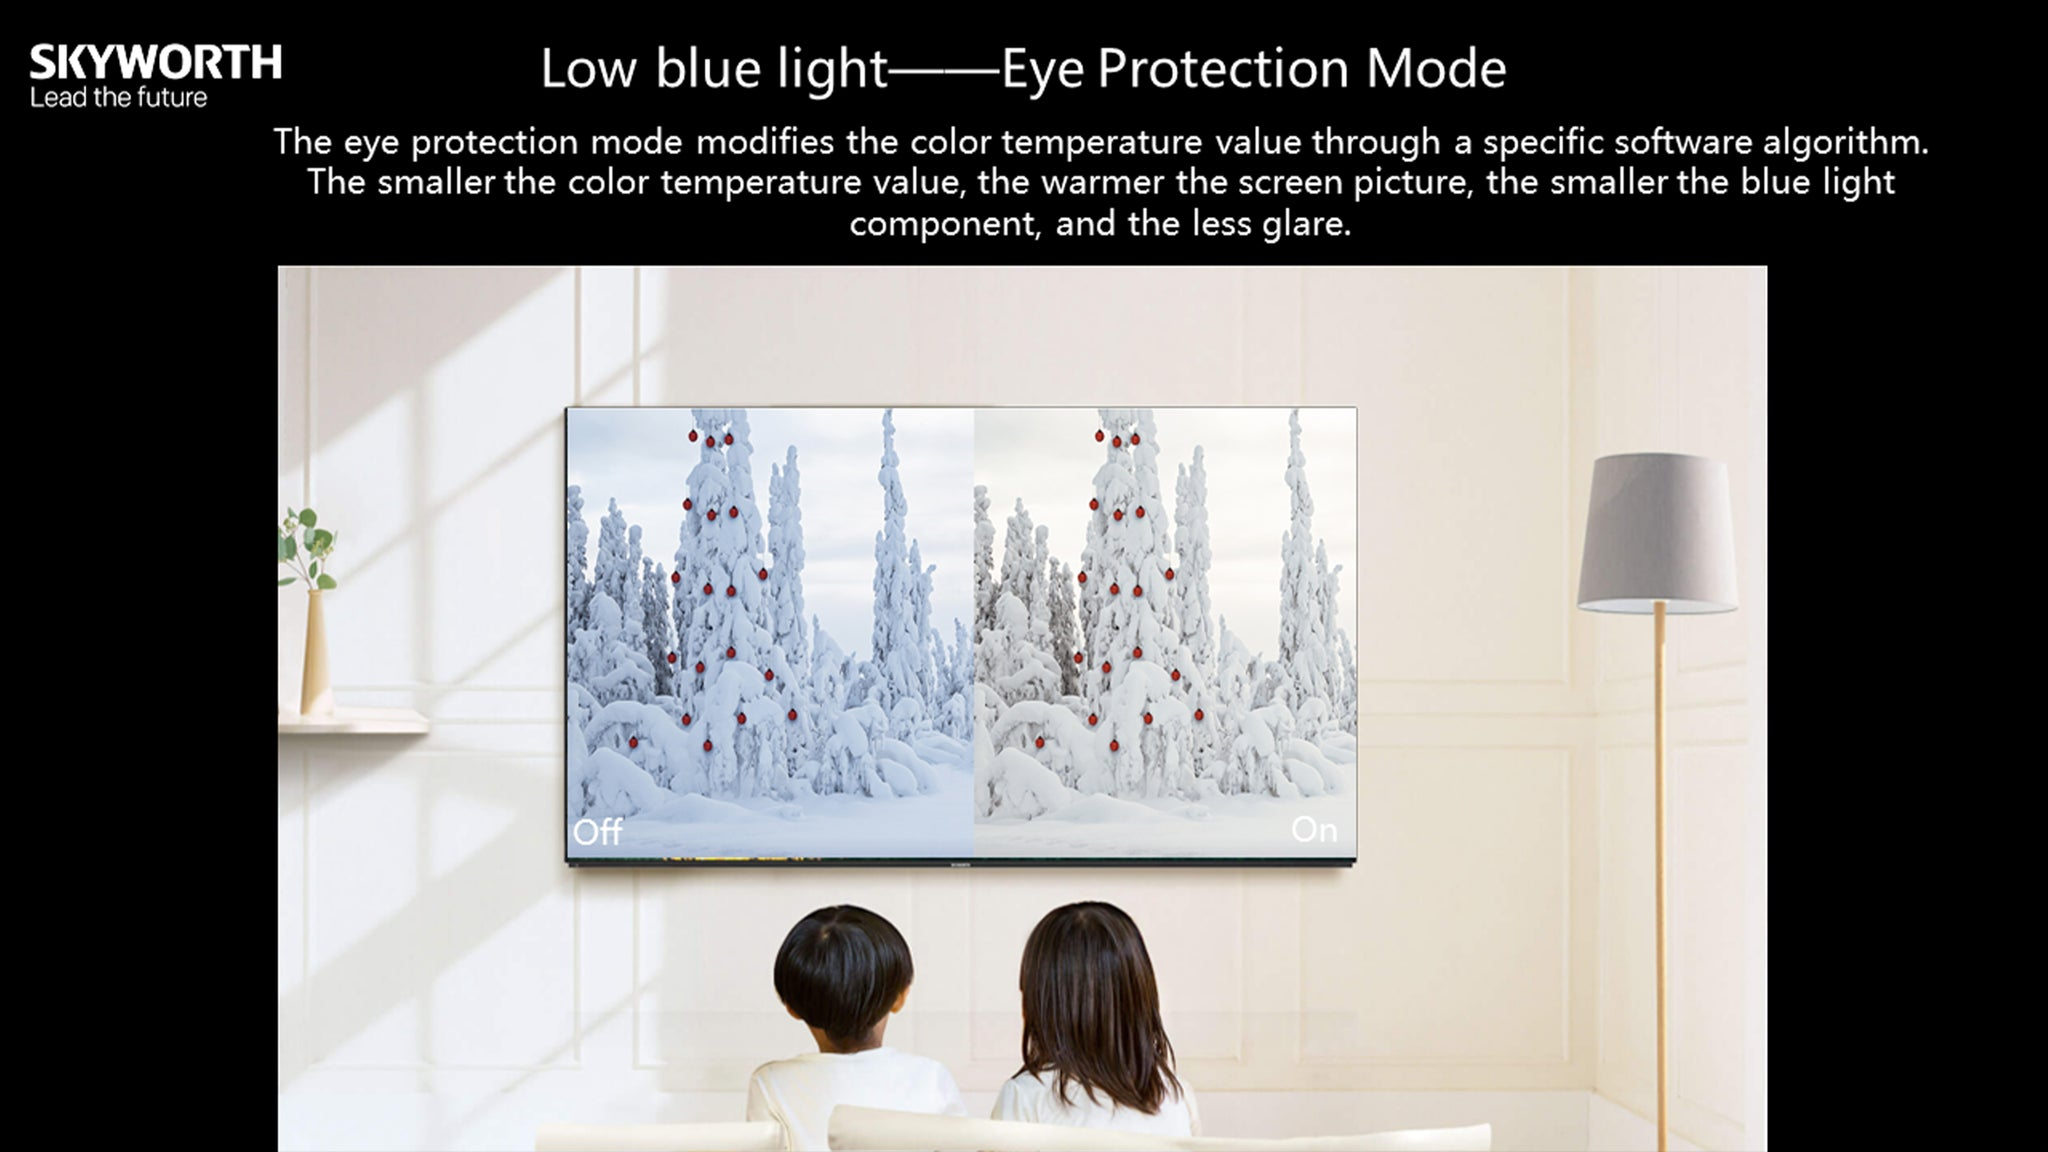 Low blue light Eye Protection Mode